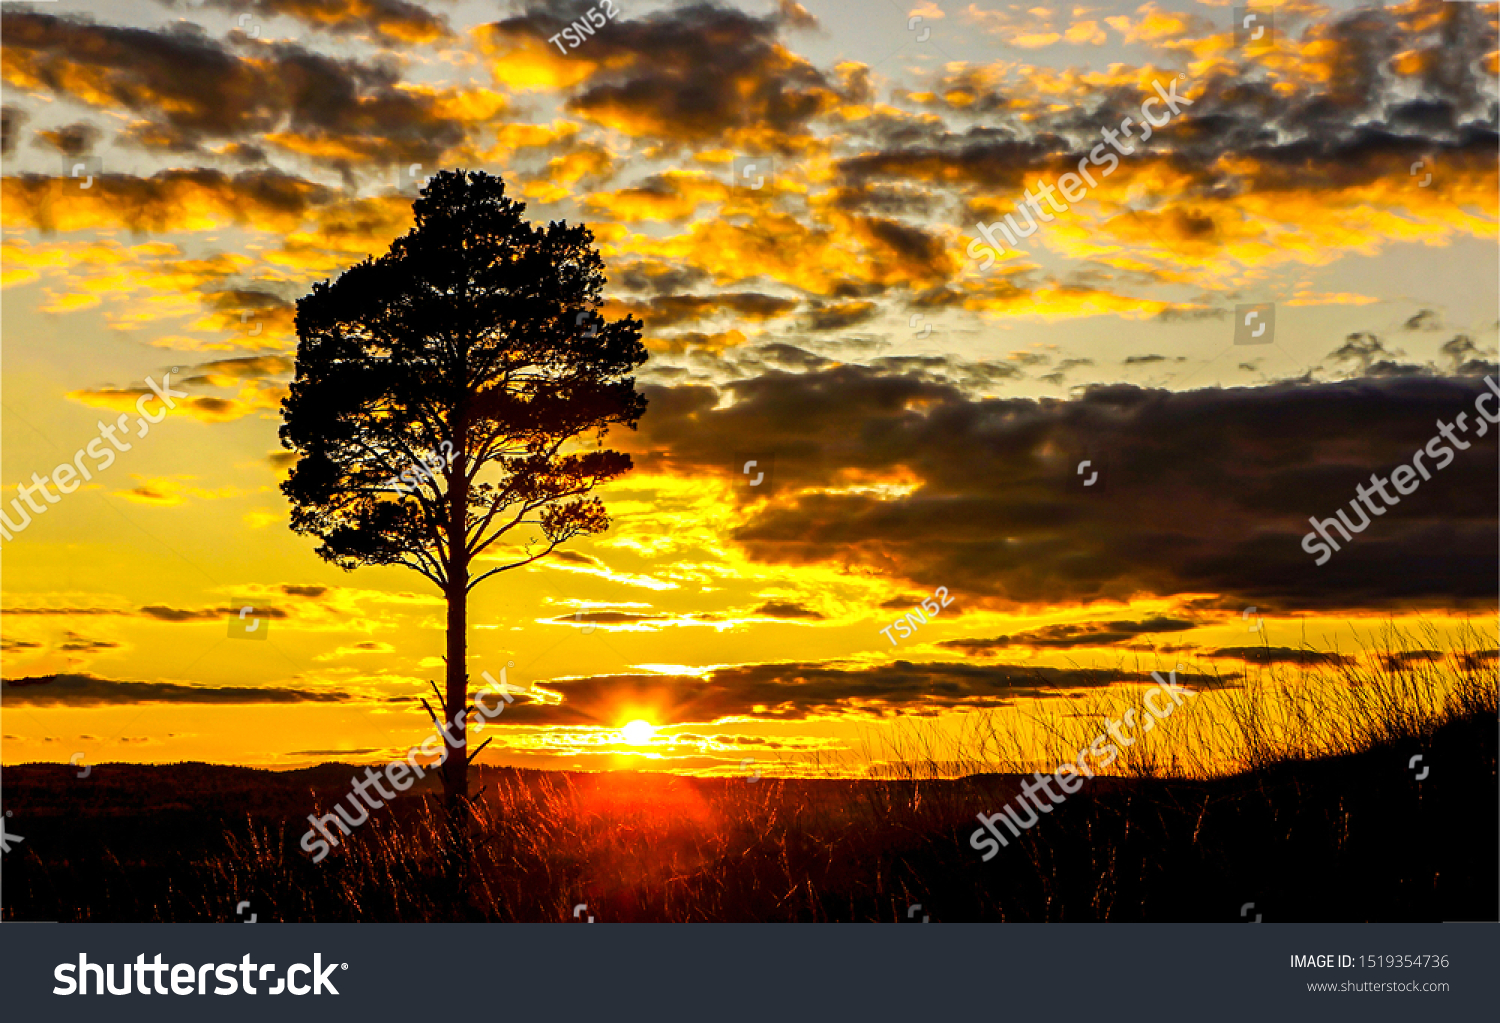 Sunset field tree silhouette landscape. Sunset tree silhouette. Sunset tree field view. Sunset tree sky clouds landscape. Sunset field tree sky clouds view #1519354736